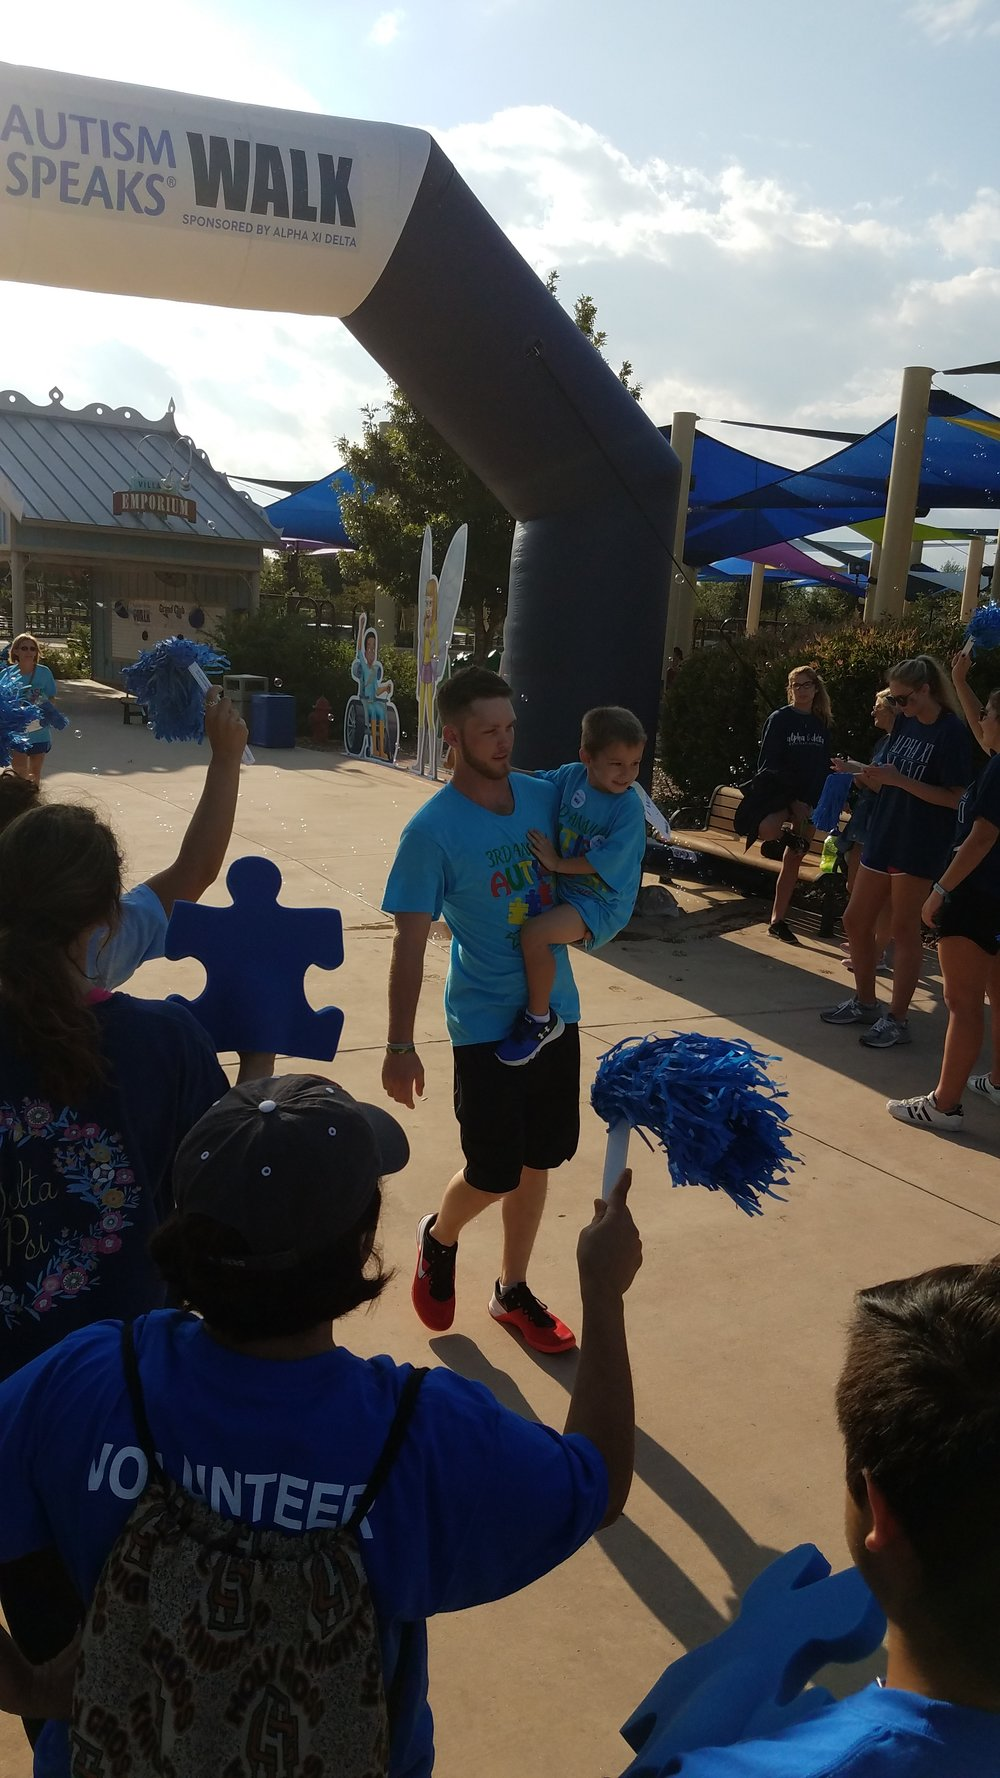 family-aba-therapy-provider-san-antonio-autism-speaks-walk-2017-cultivate.jpg